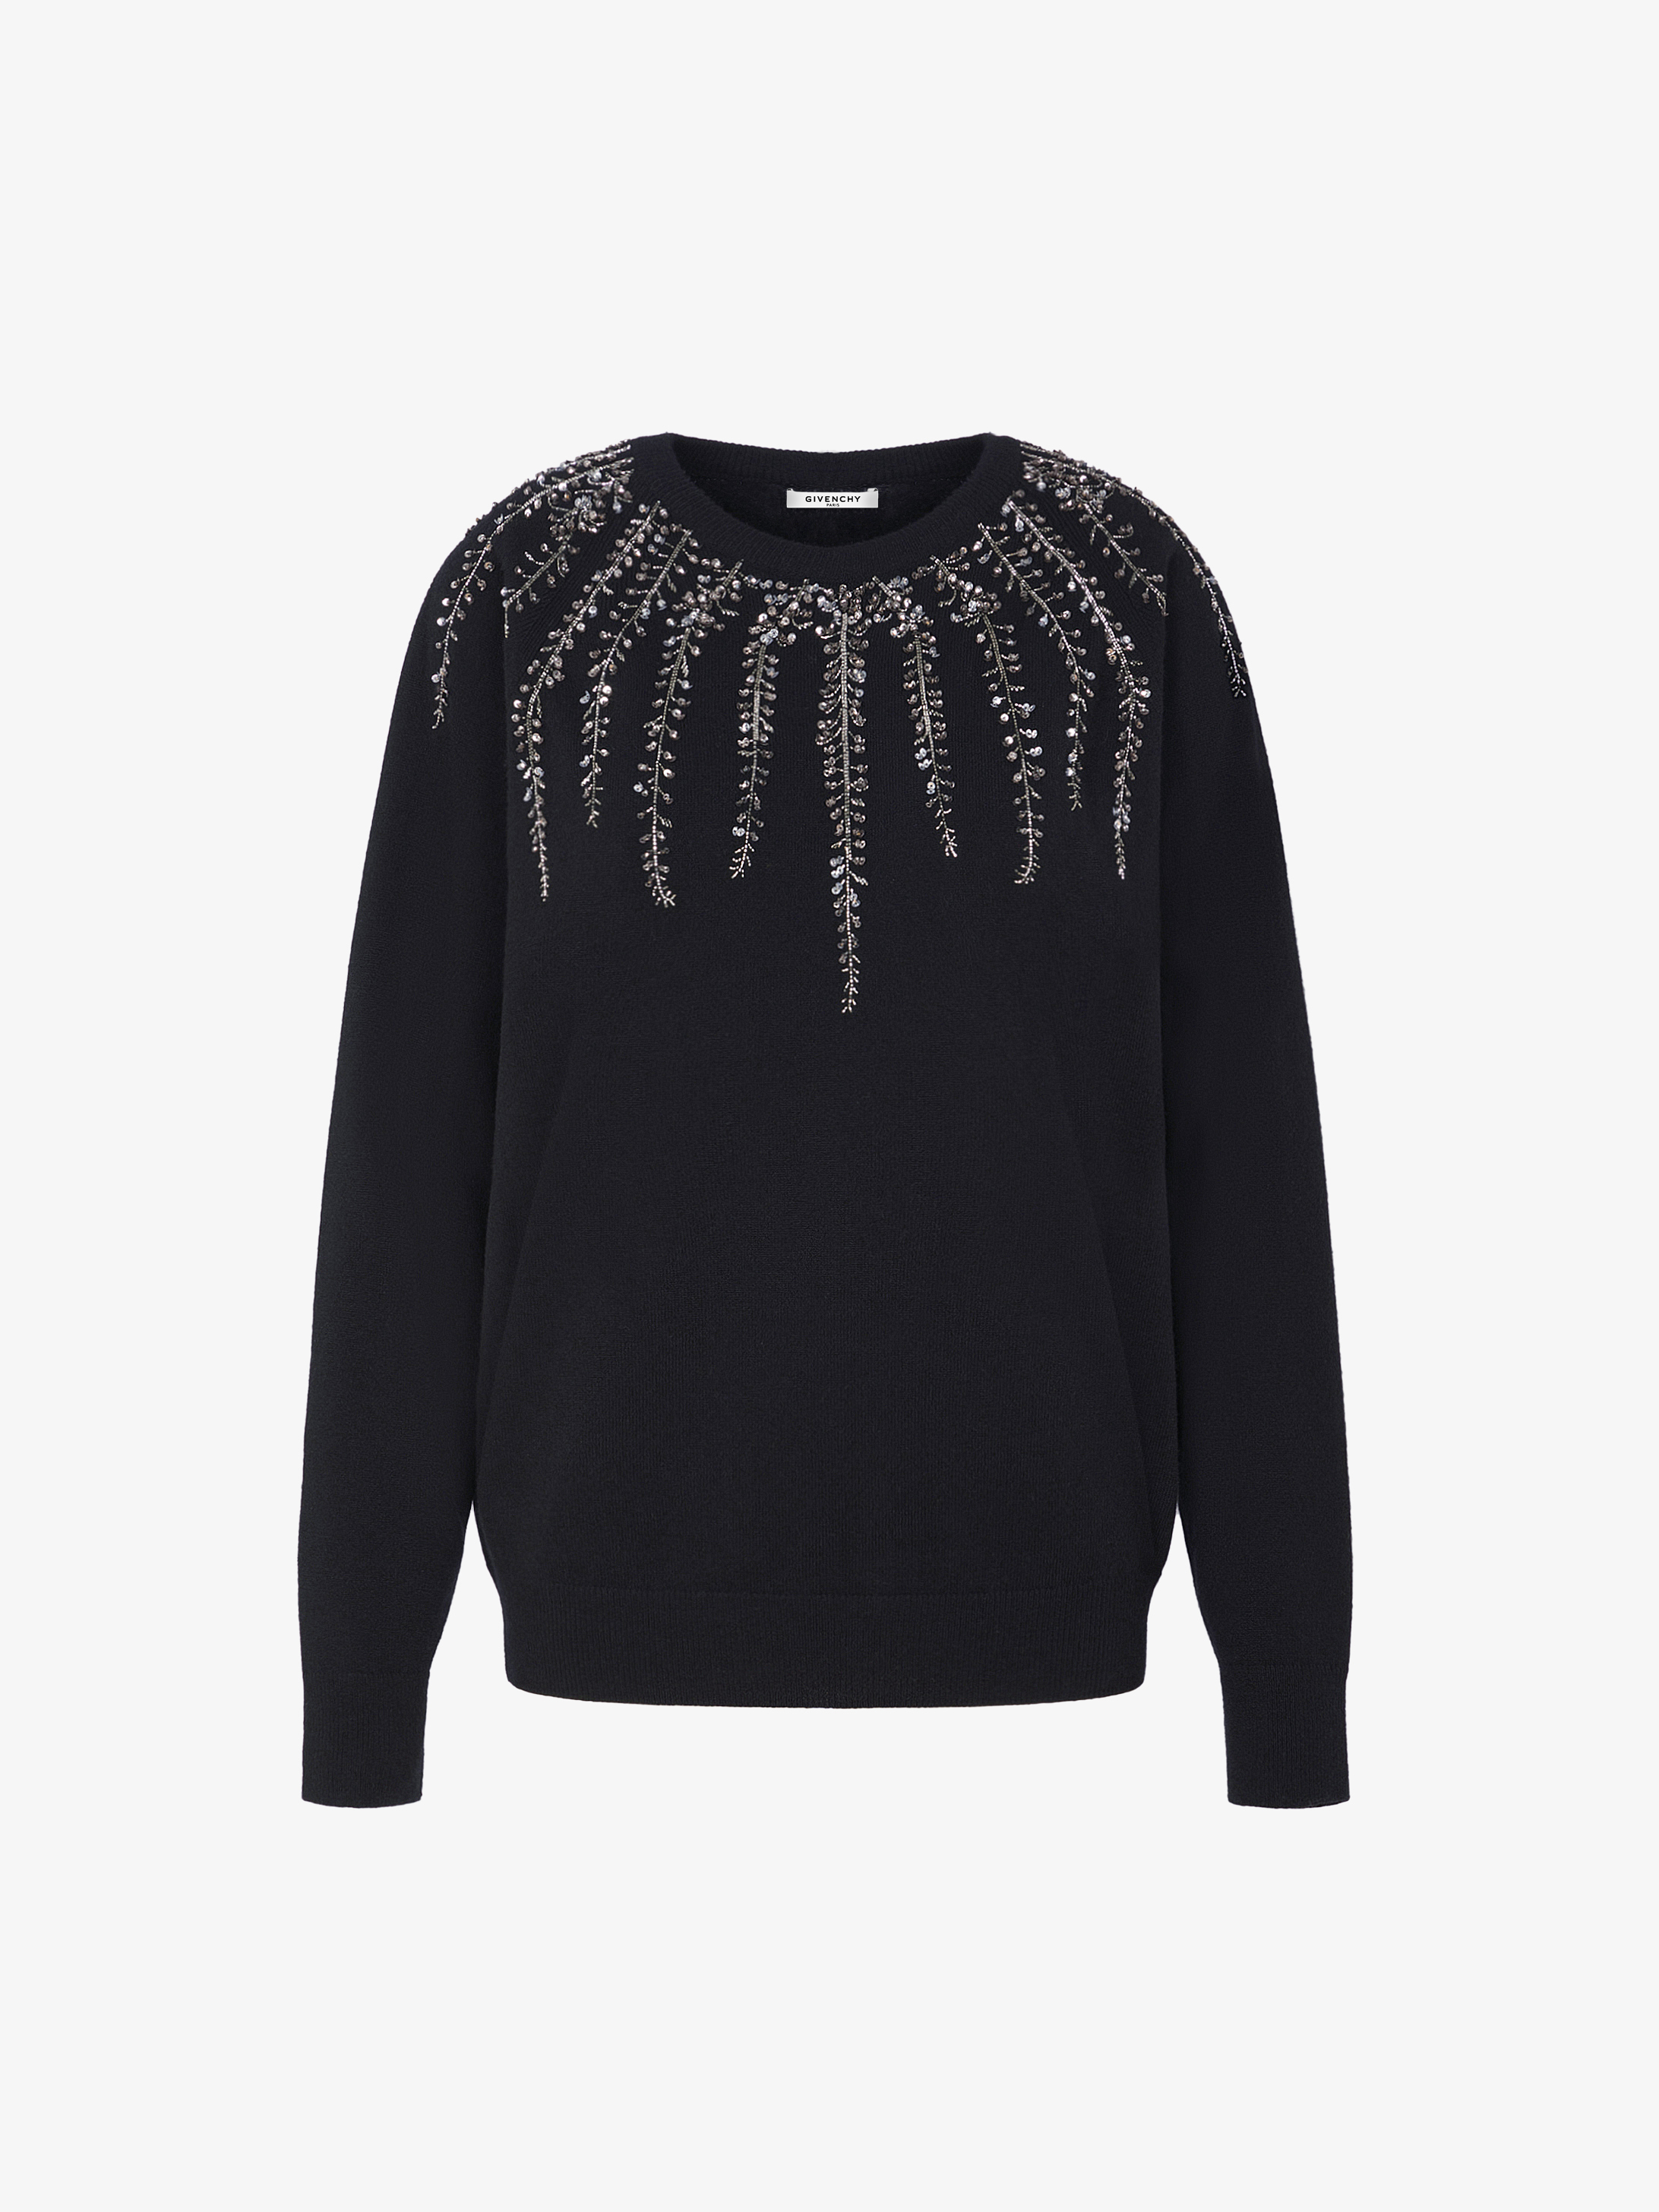 Sweater in wool and cashmere with plant-motif embroidery